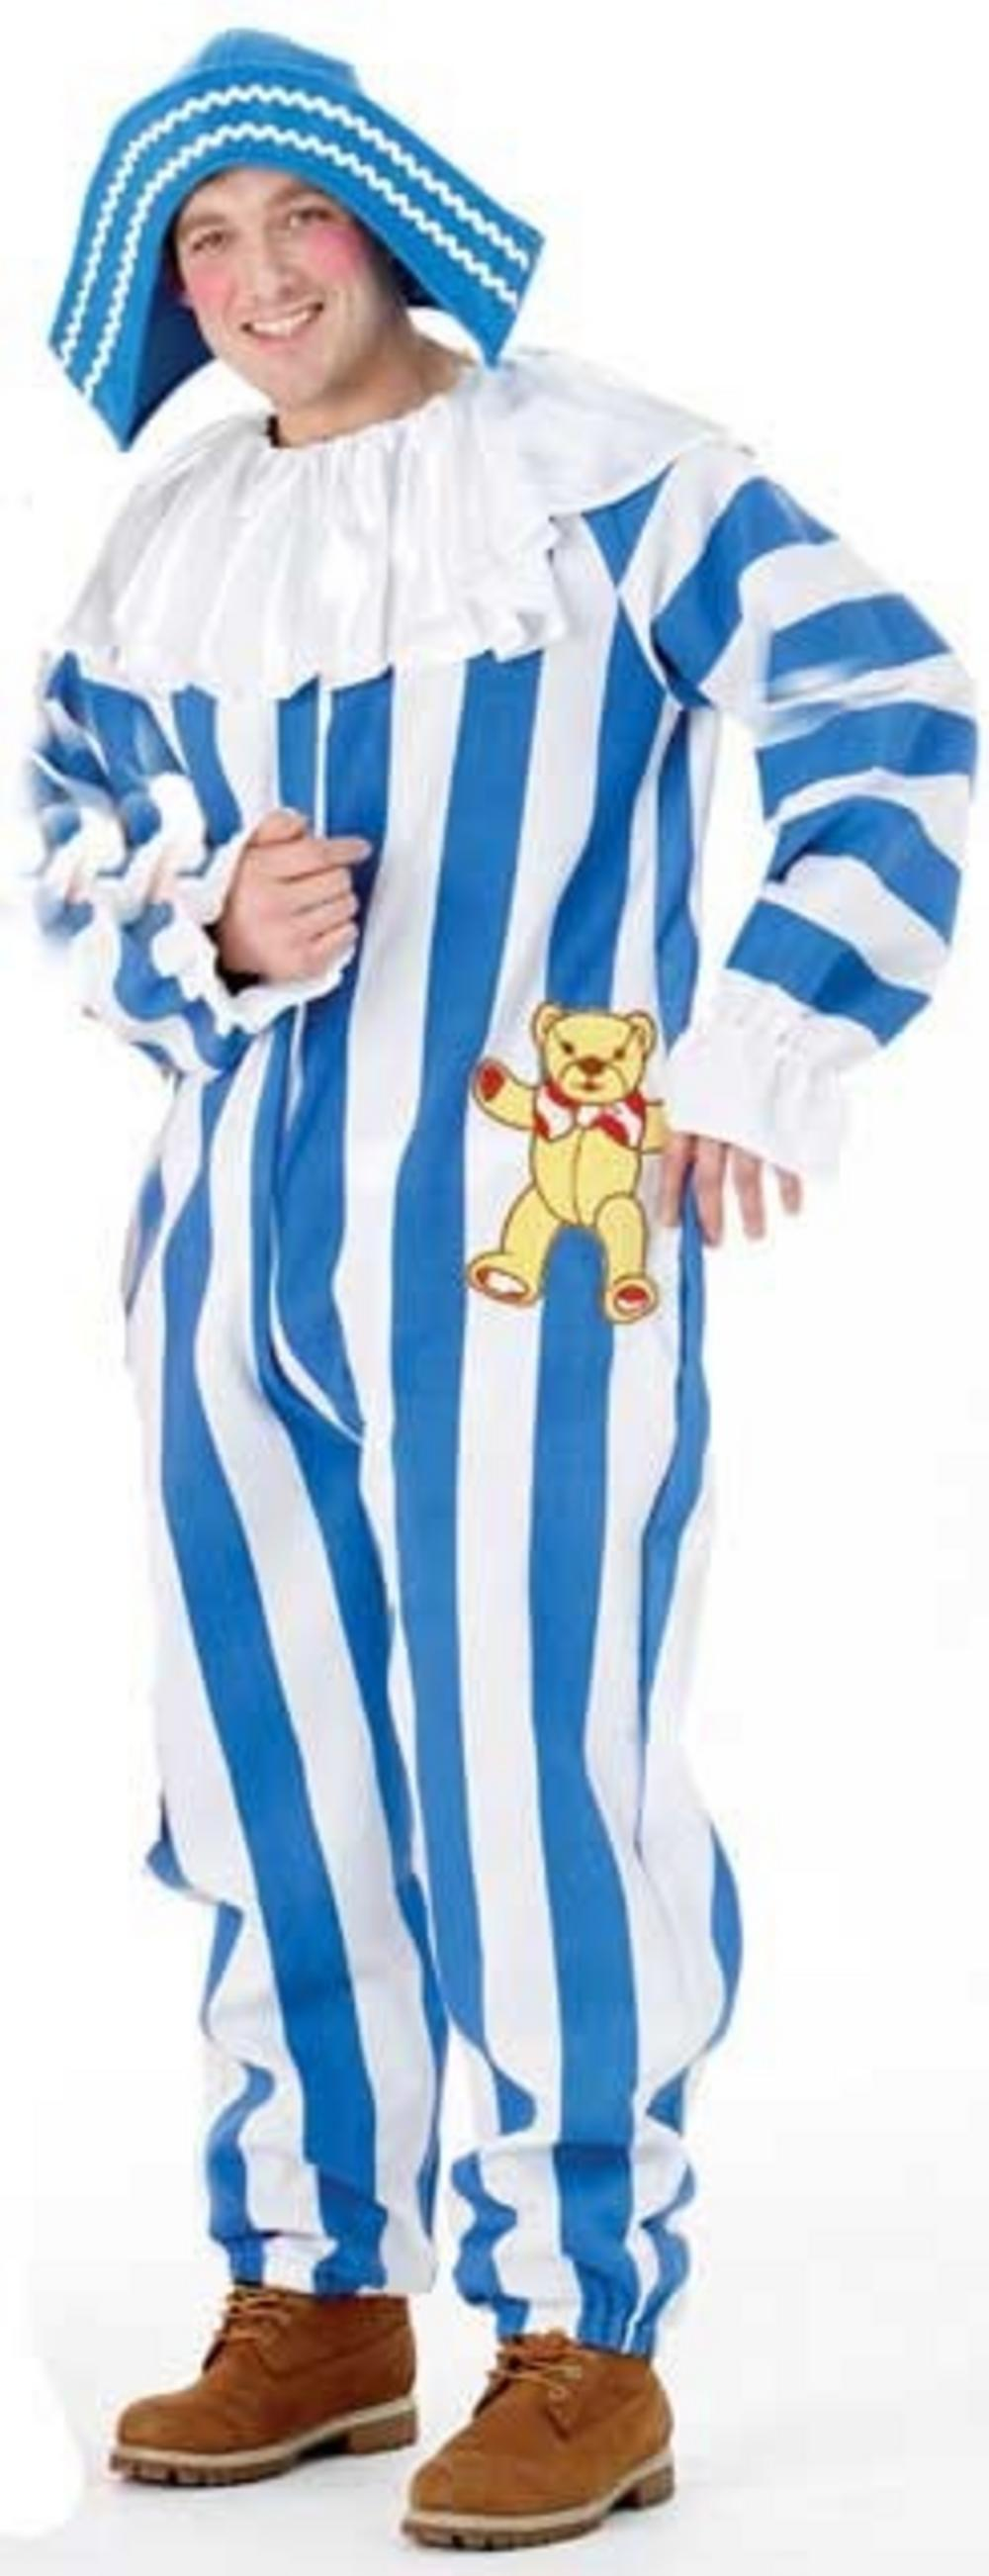 Andy Pandy Costume